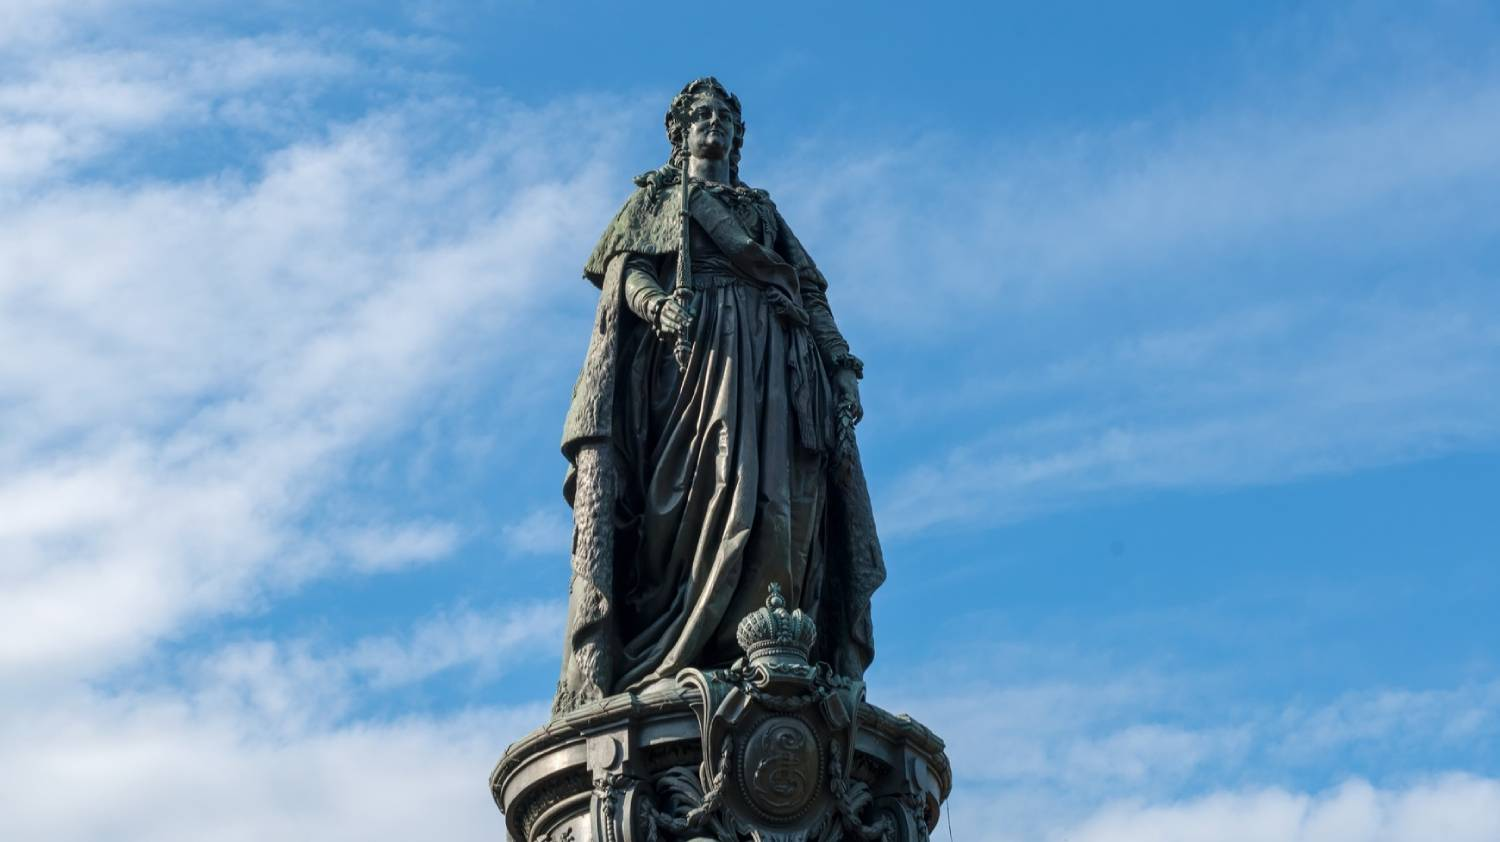 Monument to Catherine the Great - Things To Do In Saint Petersburg